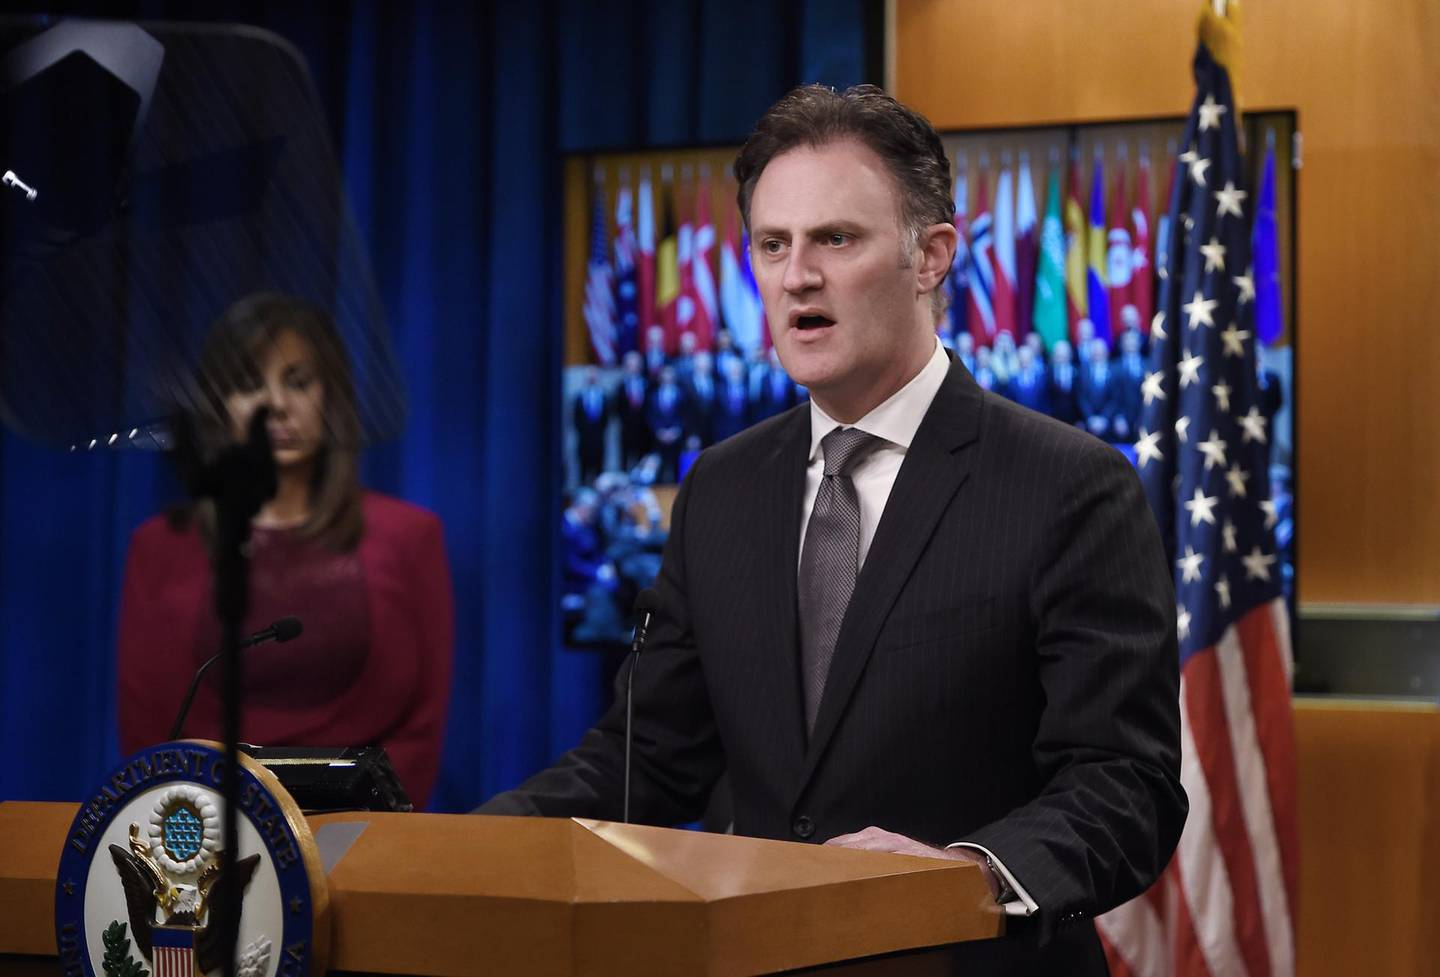 Nathan Sales, ambassador-at-large and coordinator for counterterrorism at the State Department speaks during a briefing at the State Department in Washington, DC, on November 14, 2019. - US Secretary Mike Pompeo hosted the Global Coalition to Defeat ISIS Small Group Ministerial, at the State Department. (Photo by Olivier Douliery / AFP)